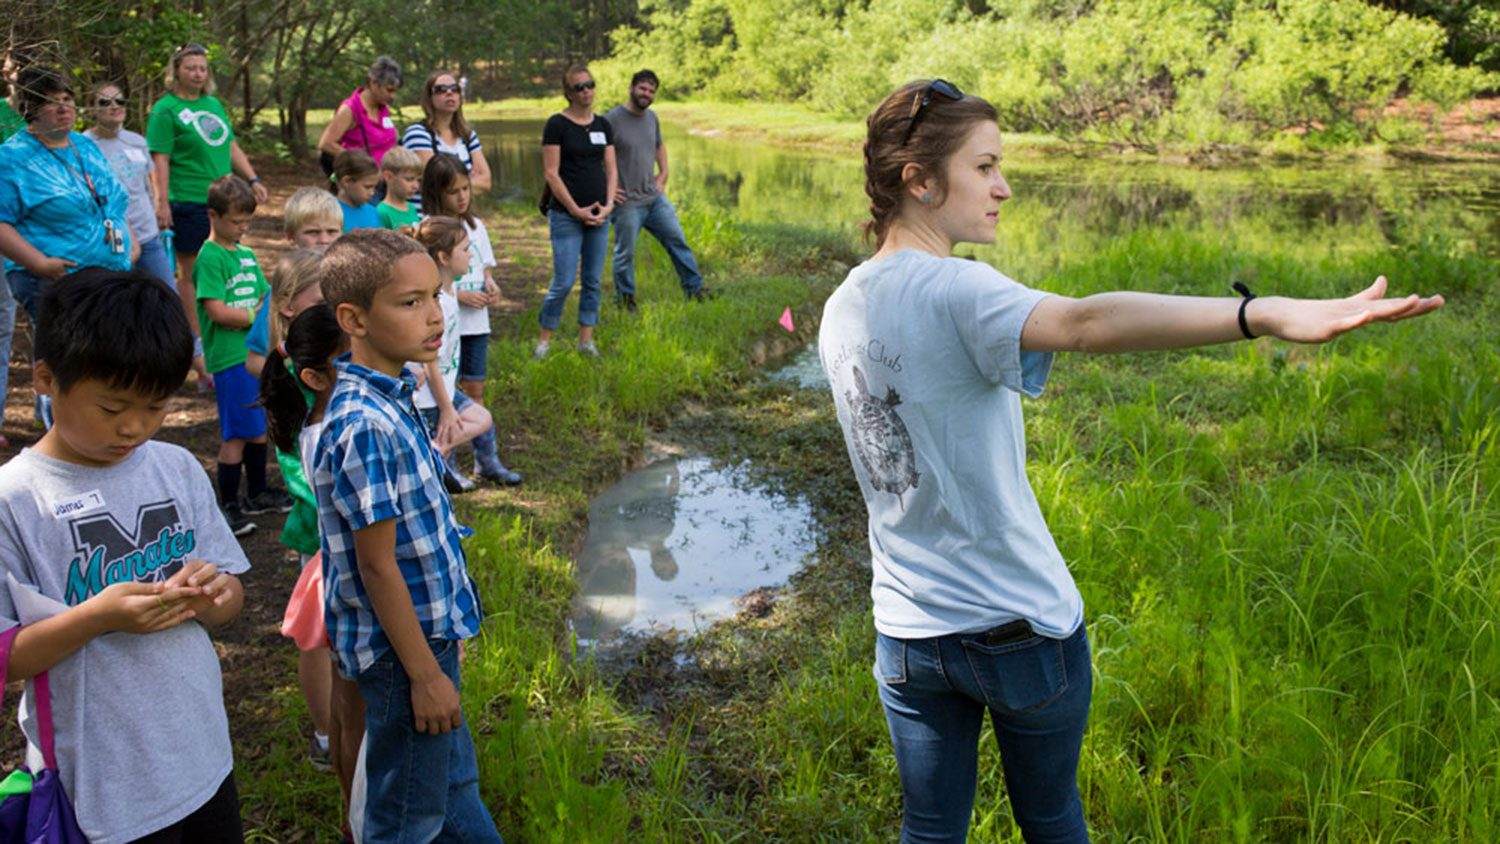 BAE assistant professor Natalie Nelson out in the field with students